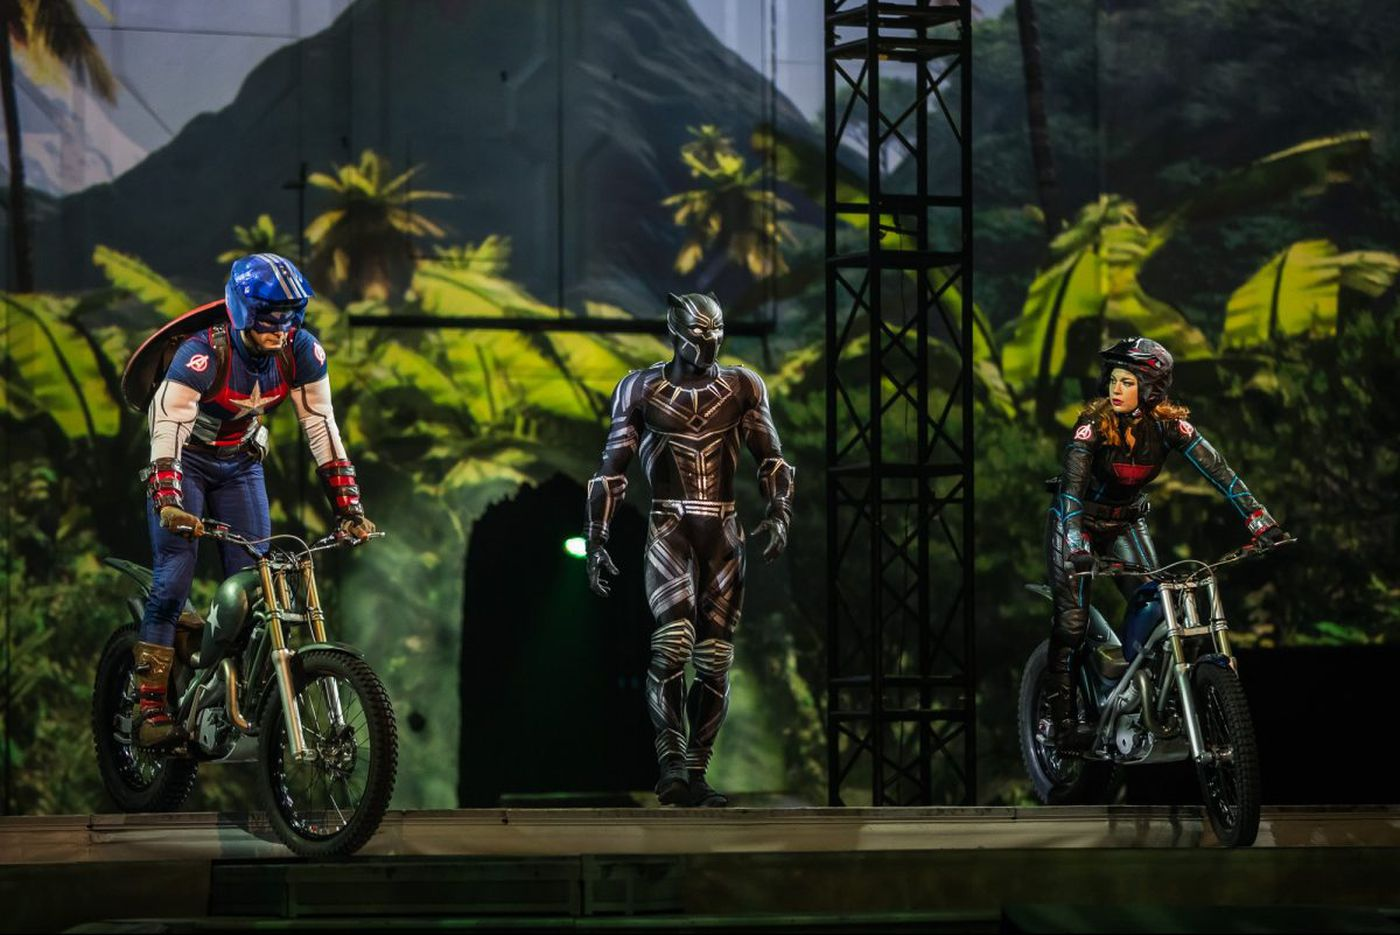 Marvel's superheroes and villains bring the action to the Wells Fargo Center